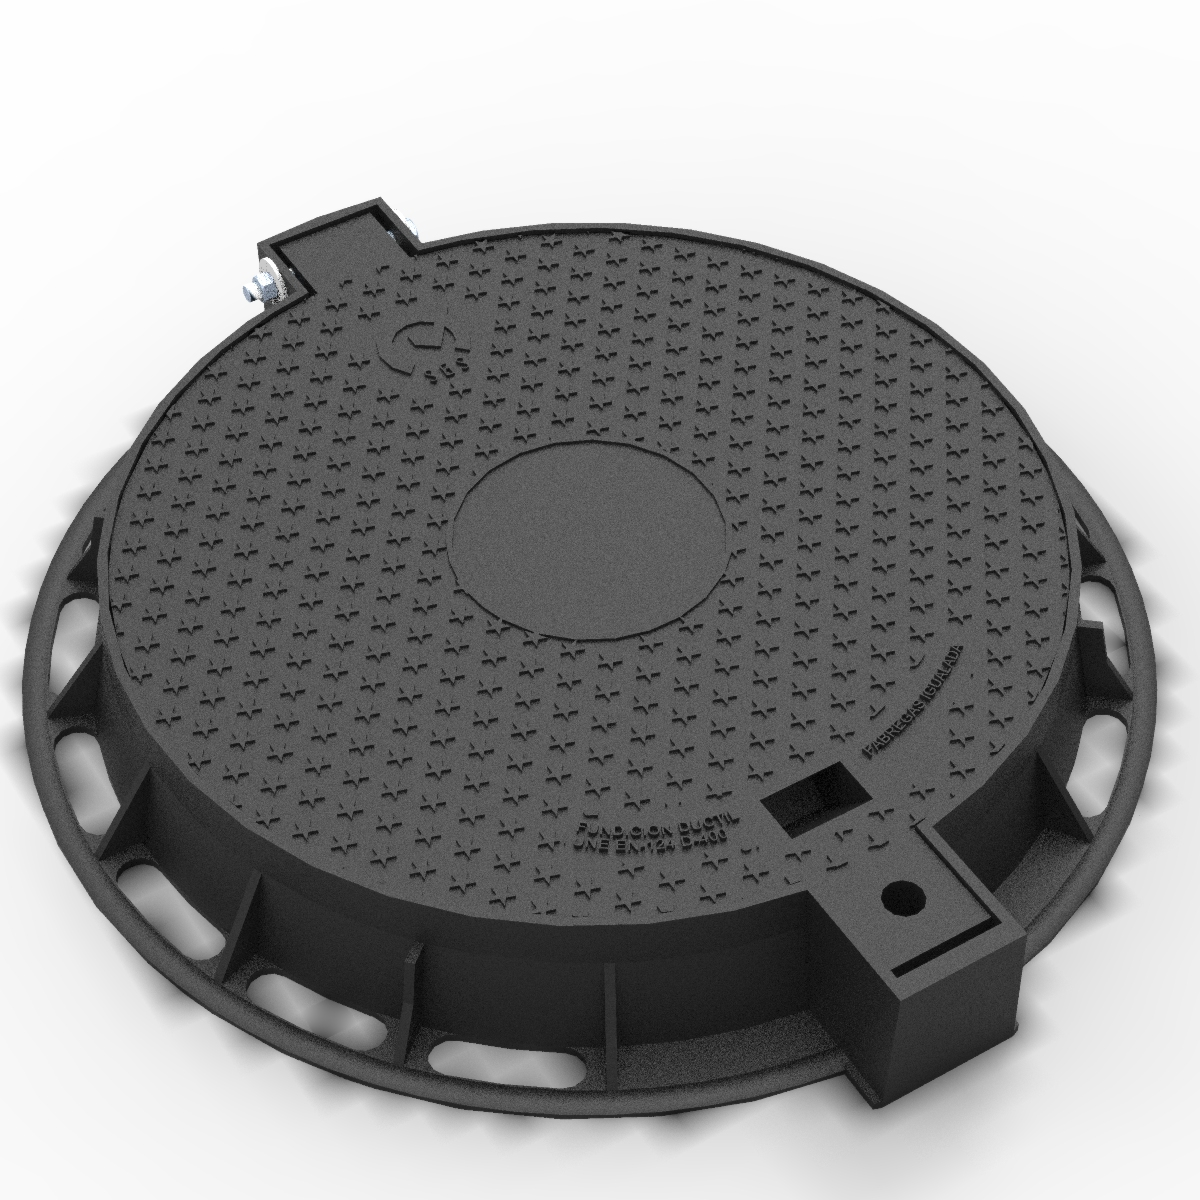 Folding Manhole Cover and ring of ductile casting R-100-TP-C